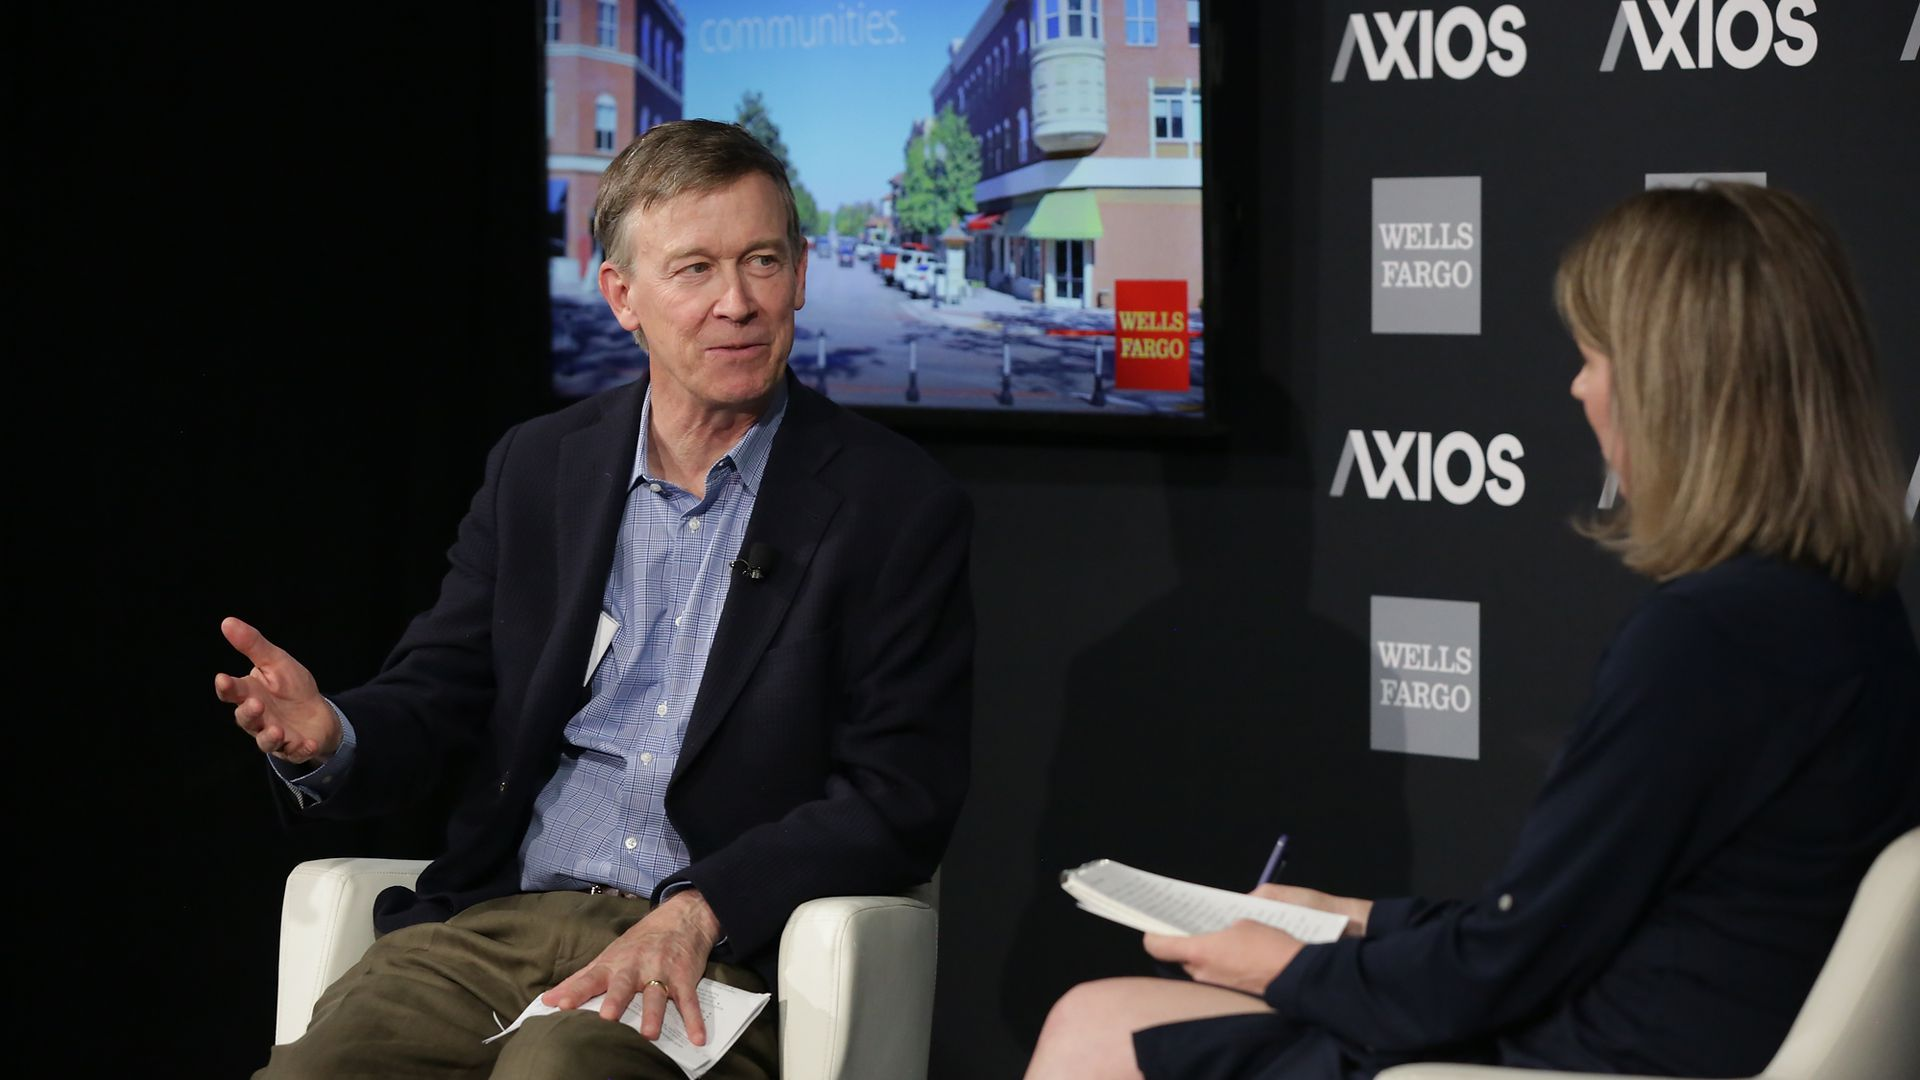 Colorado Governor John Hickenlooper speaks at an Axios event in Denver on Friday